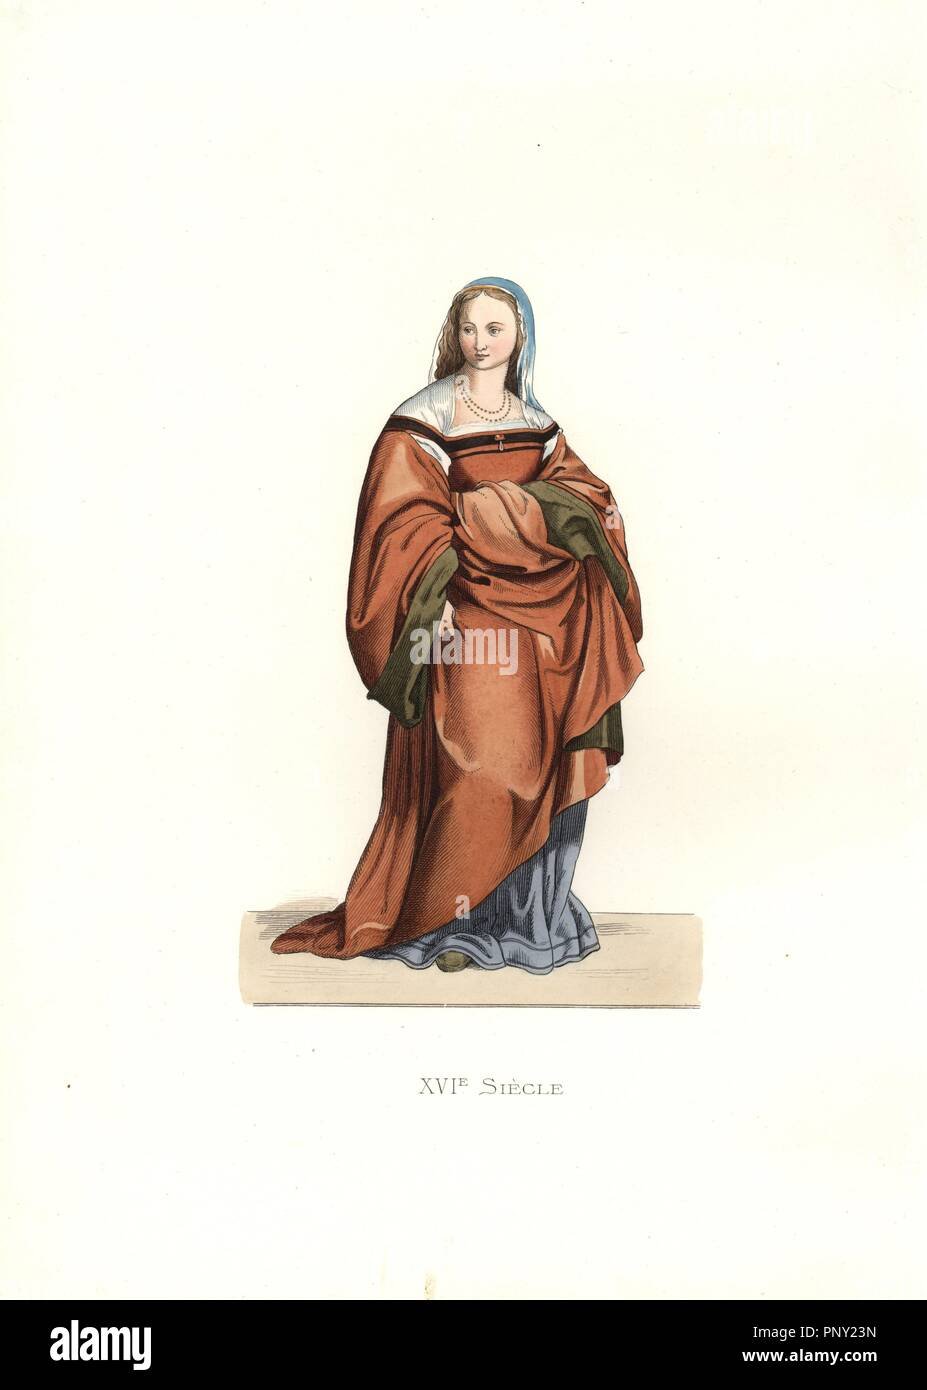 """Lady of Florence, 16th century, from a fresco by Andrea del Sarto. Long, full brown gathered dress, blue underdress, blue veil, necklace.. Handcolored illustration by E. Lechevallier-Chevignard, lithographed by A. Didier, L. Flameng, F. Laguillermie, from Georges Duplessis's """"Costumes historiques des XVIe, XVIIe et XVIIIe siecles"""" (Historical costumes of the 16th, 17th and 18th centuries), Paris 1867. The book was a continuation of the series on the costumes of the 12th to 15th centuries published by Camille Bonnard and Paul Mercuri from 1830. Georges Duplessis (1834-1899) was curator of the P Stock Photo"""